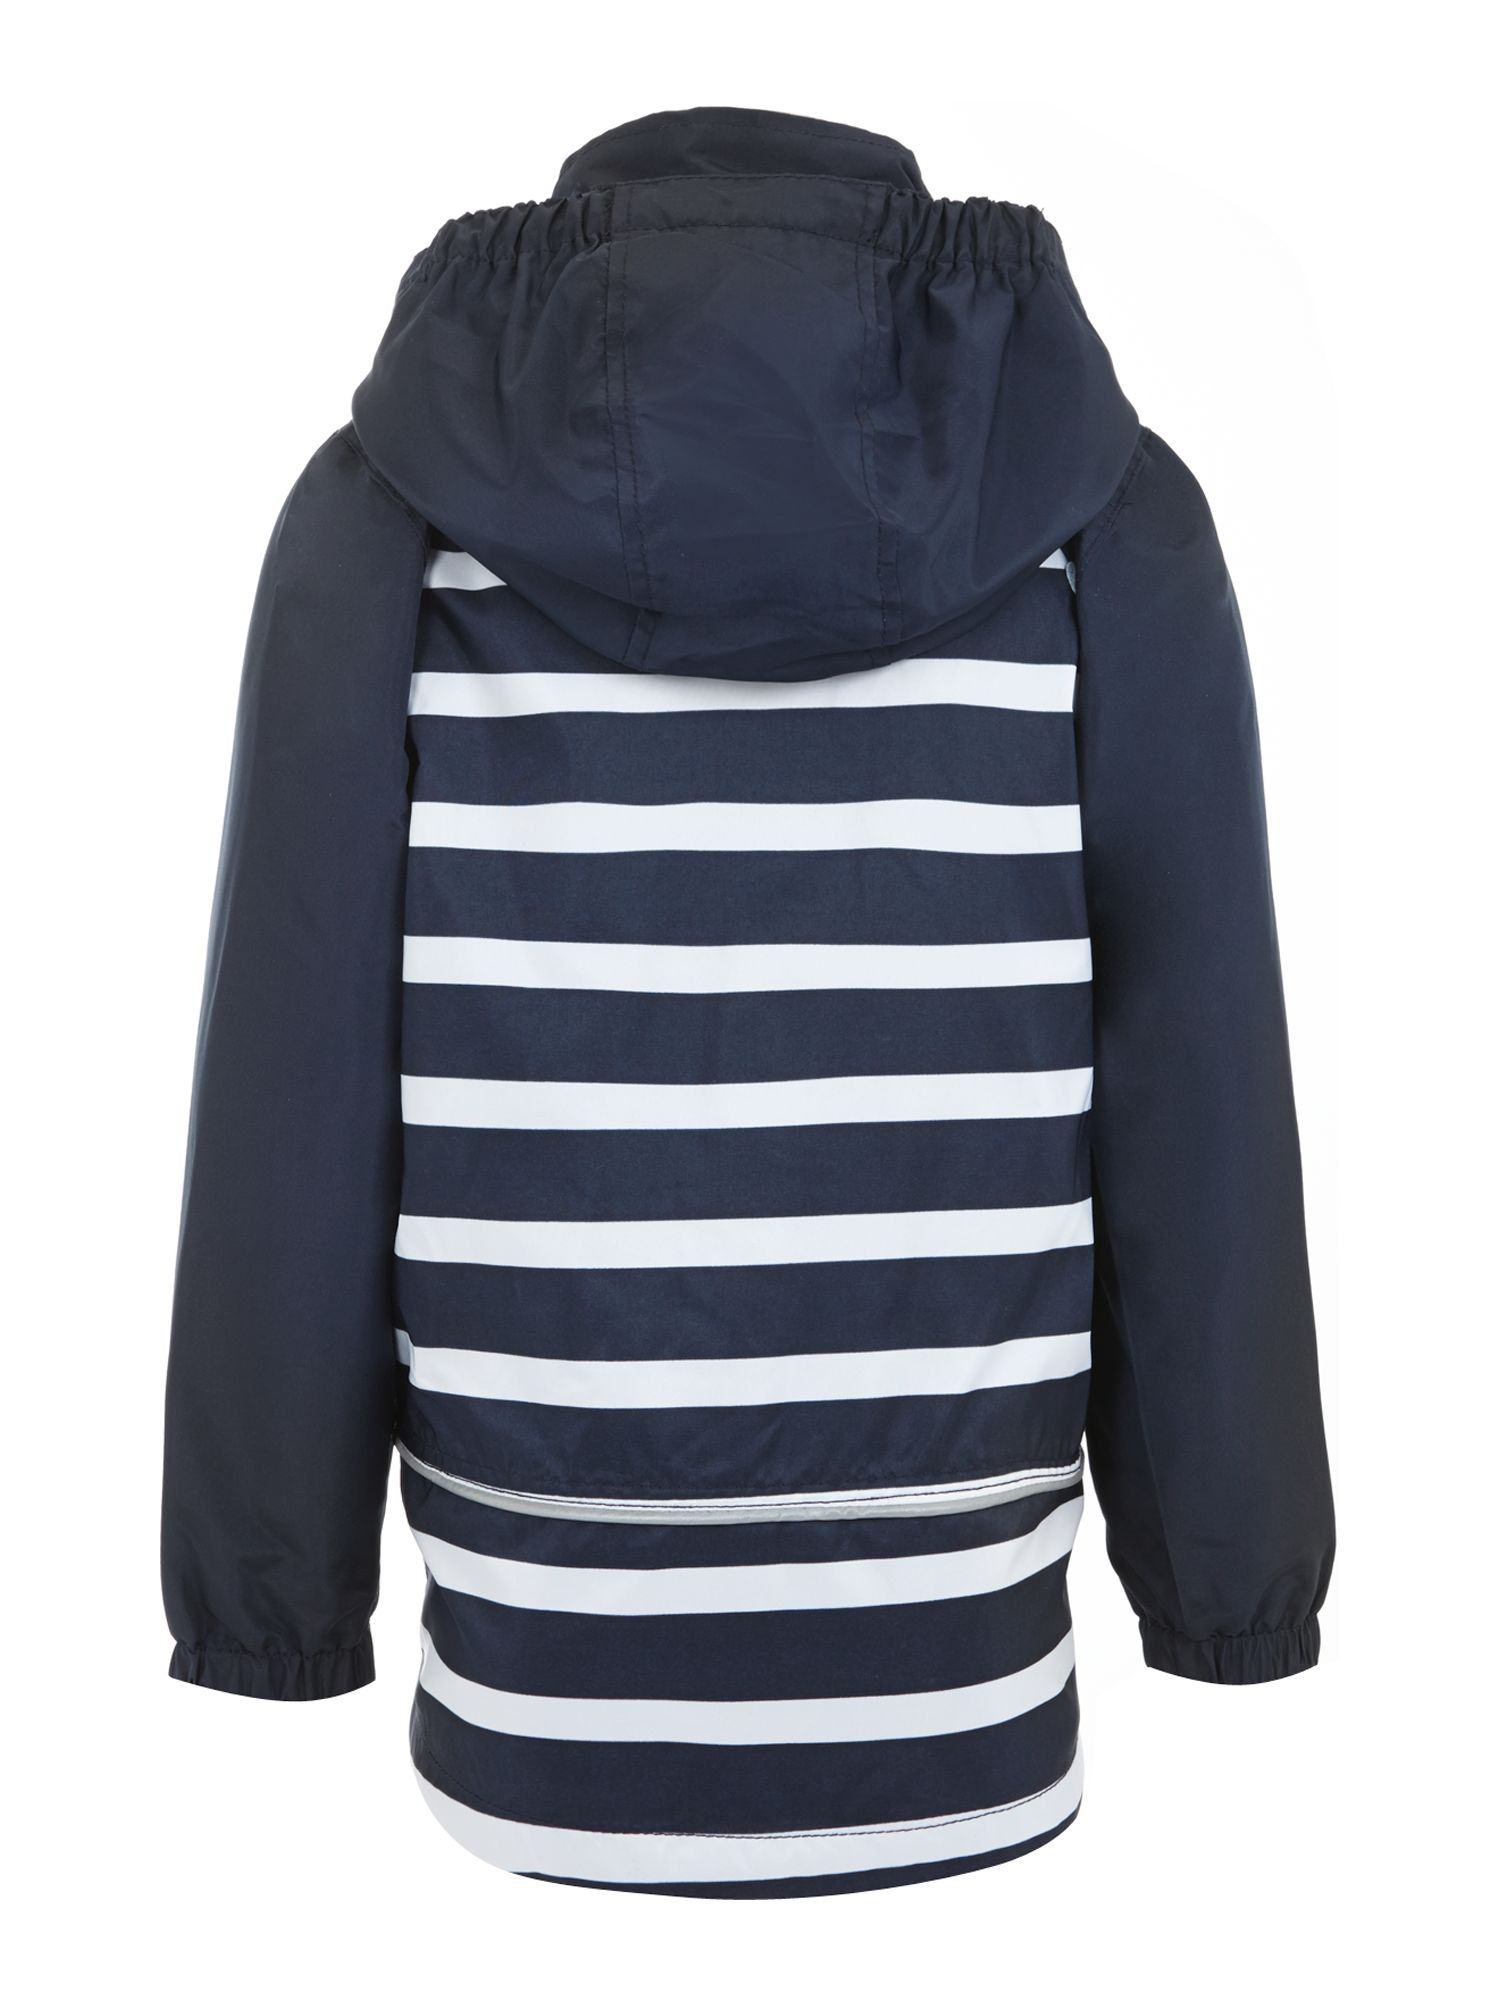 Boys striped jacket with detachable hood